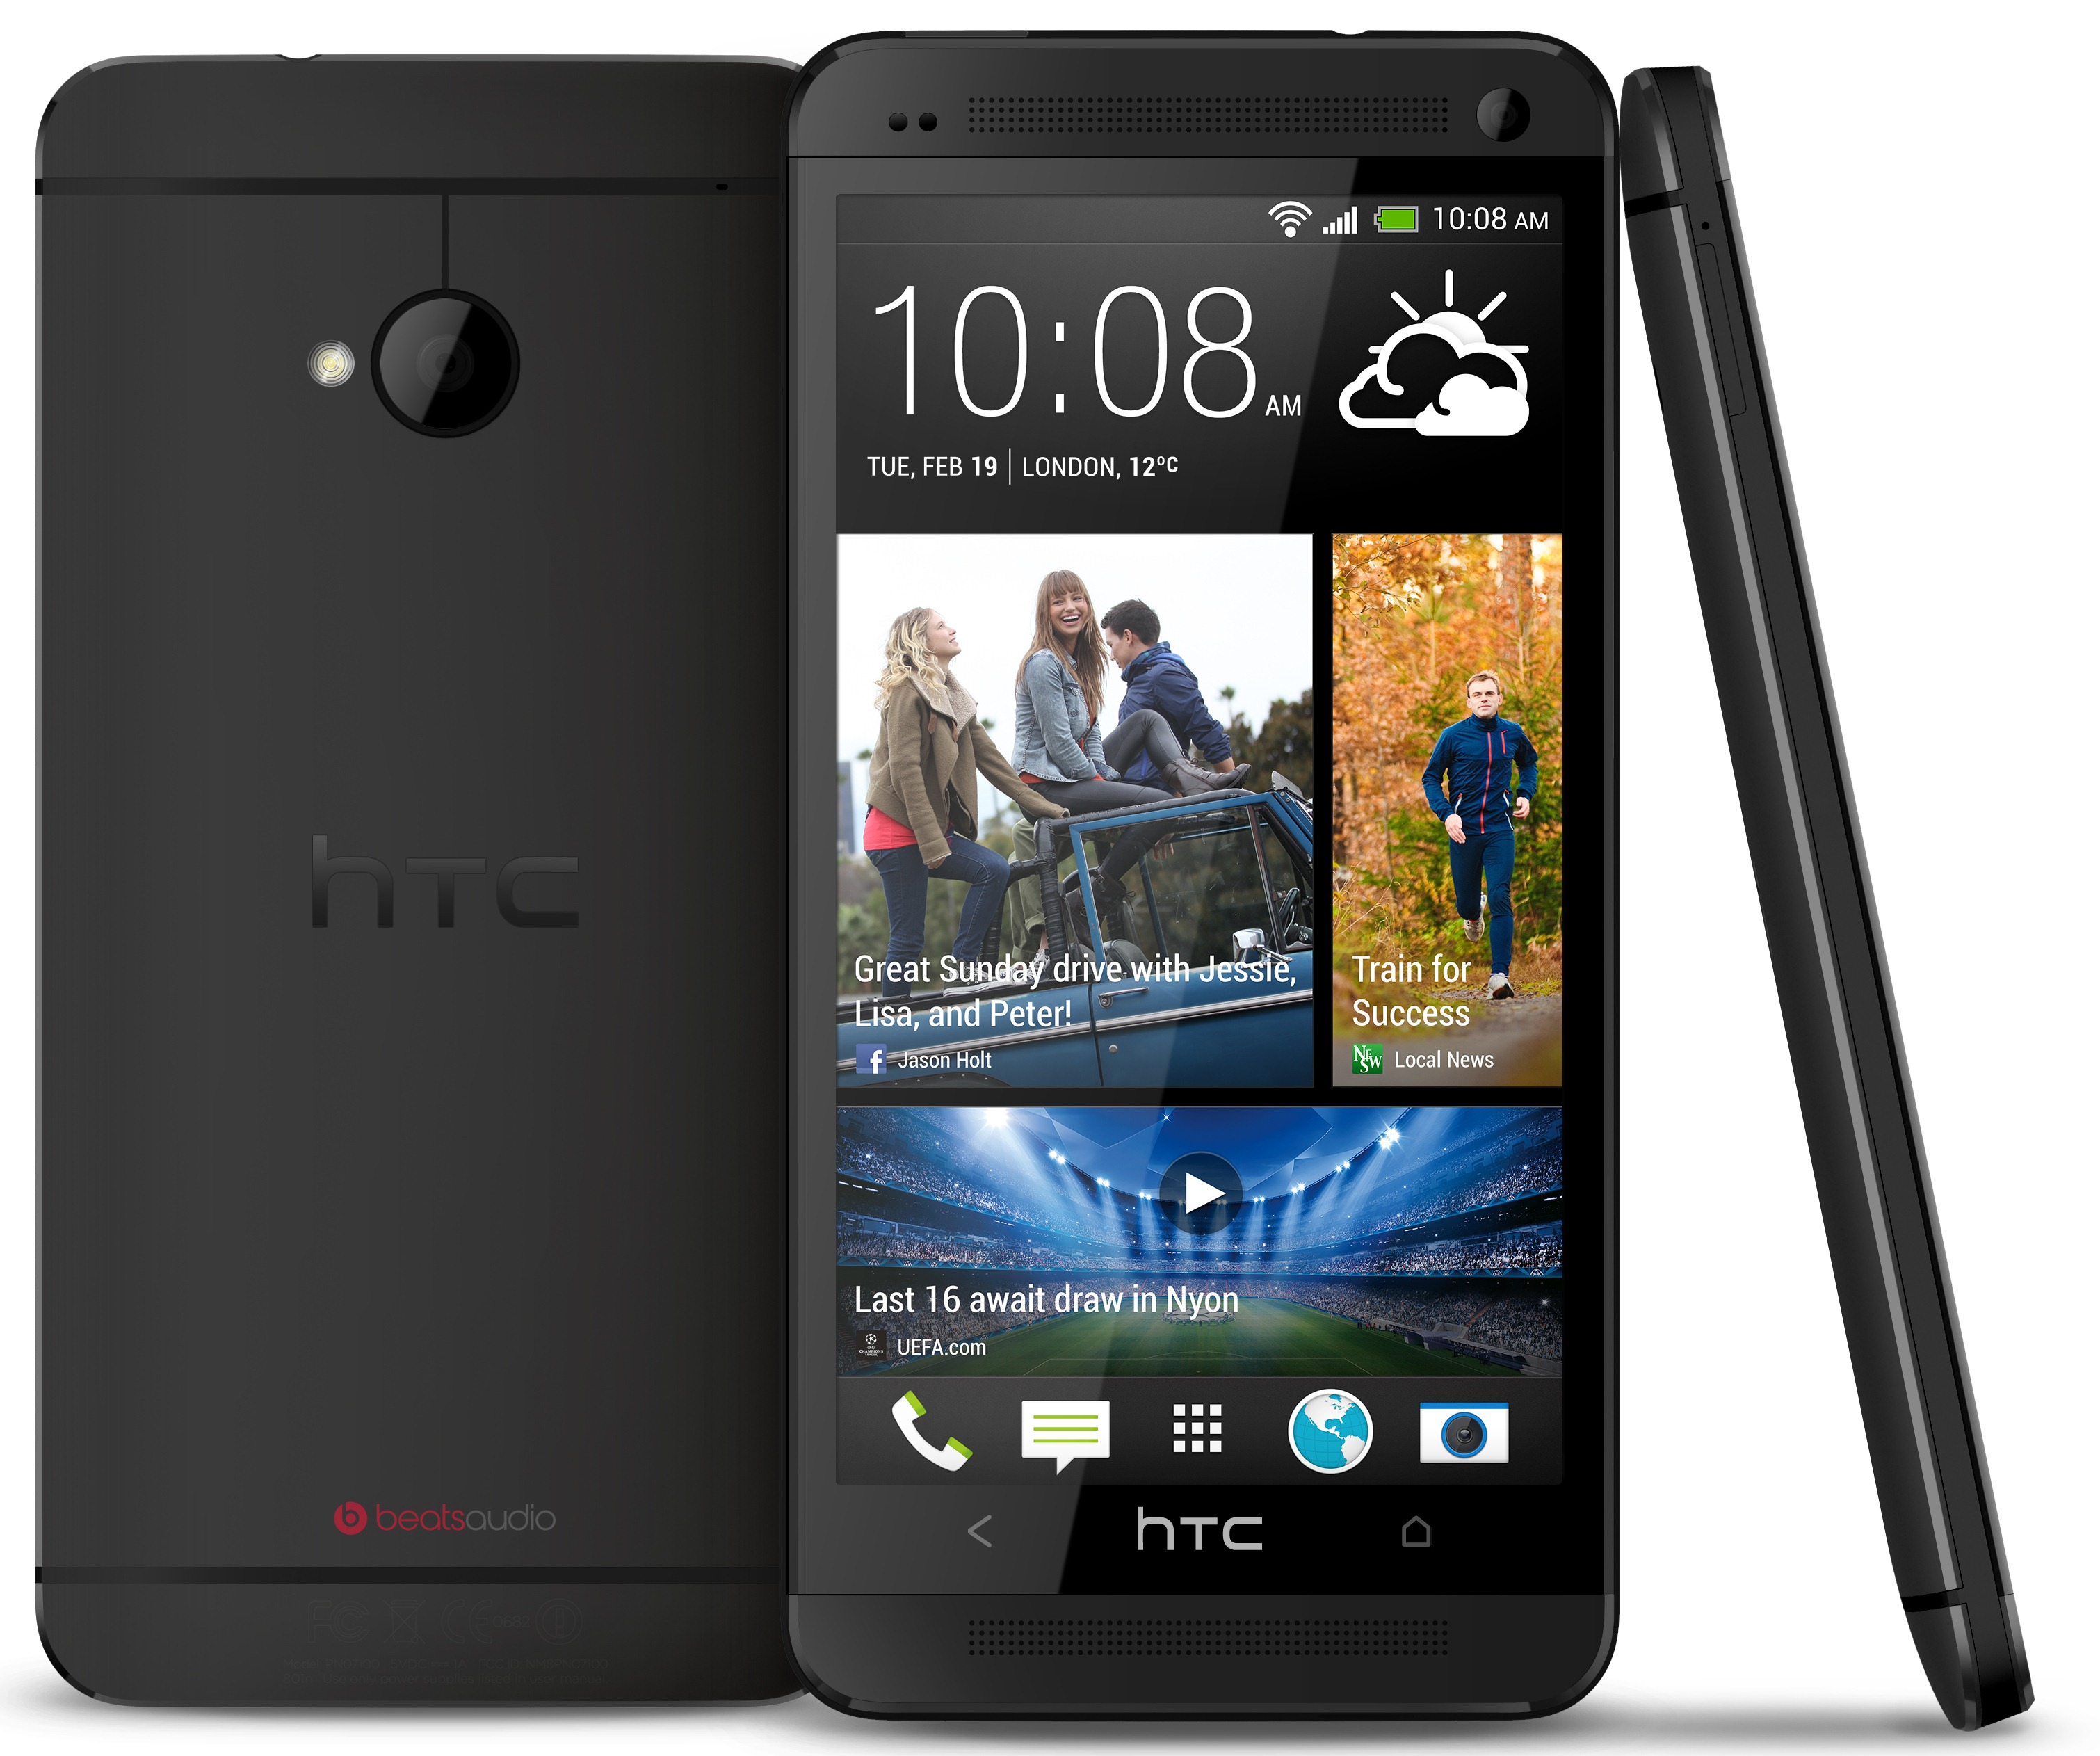 HTC-One-the-one